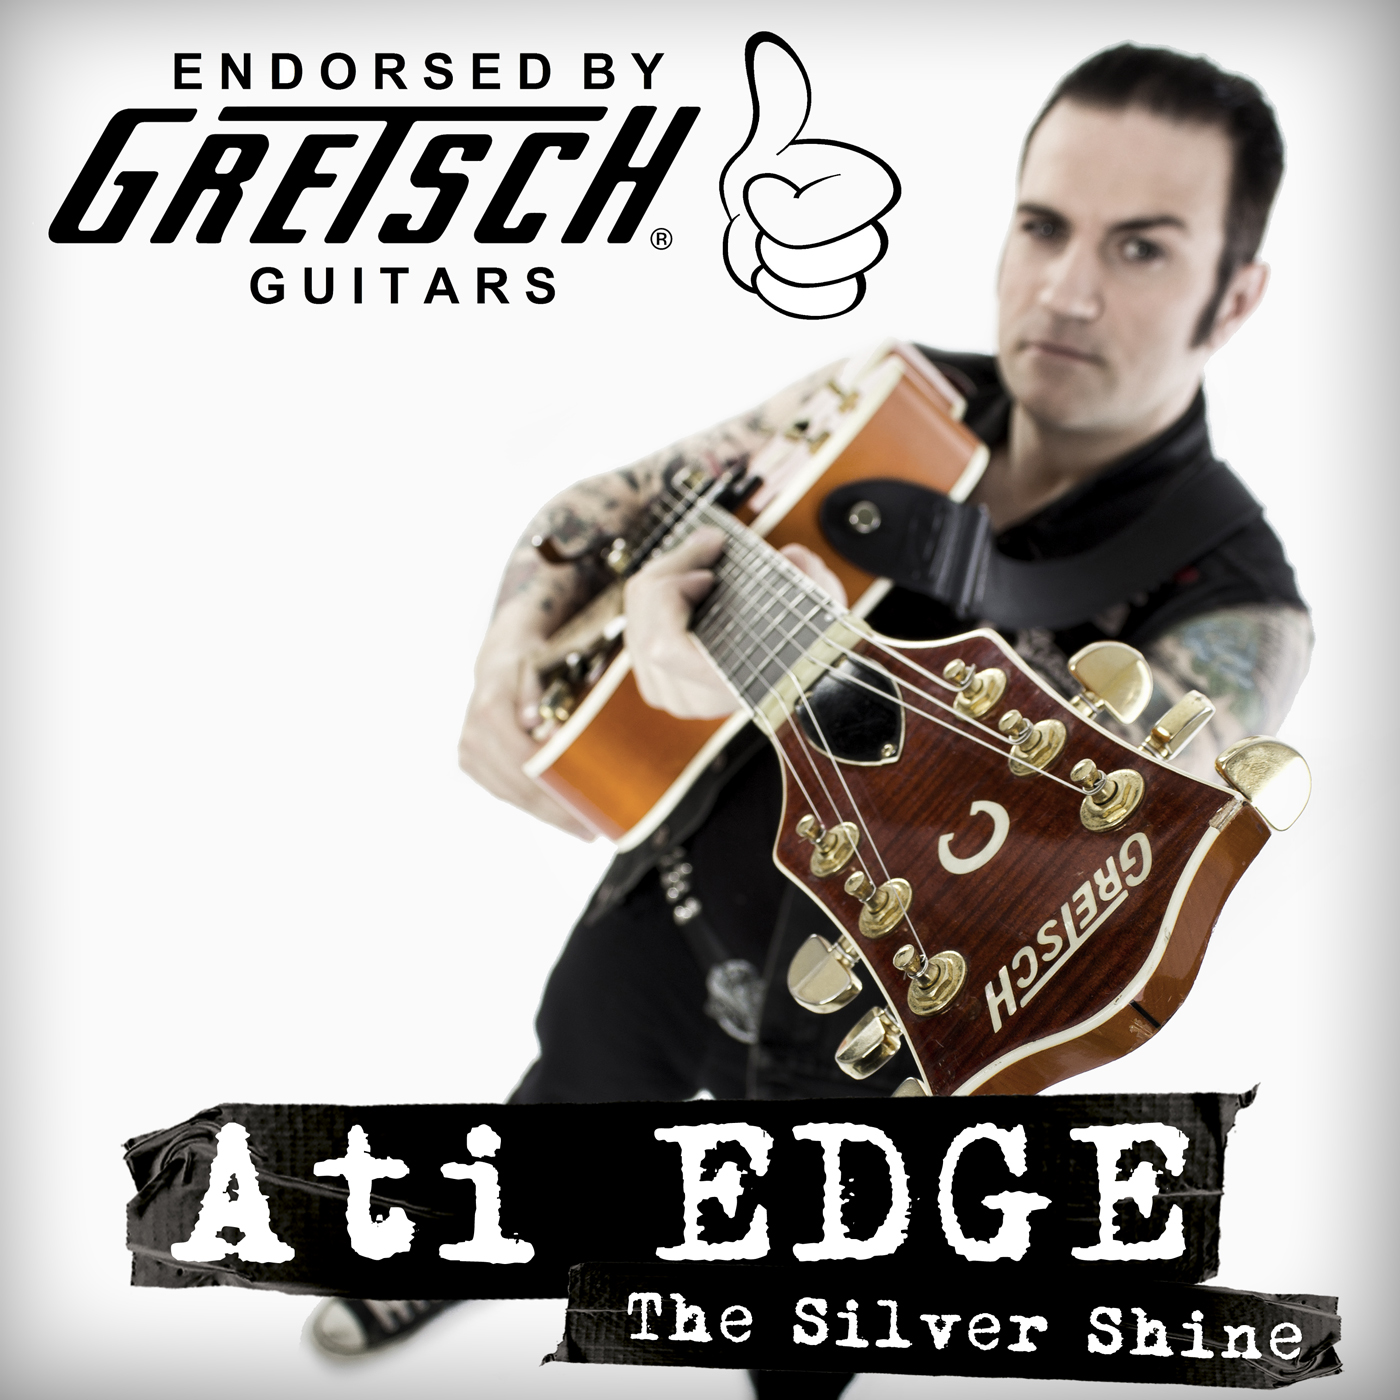 http://www.thesilvershine.com/wp-content/uploads/2013/05/atigretsch.jpg